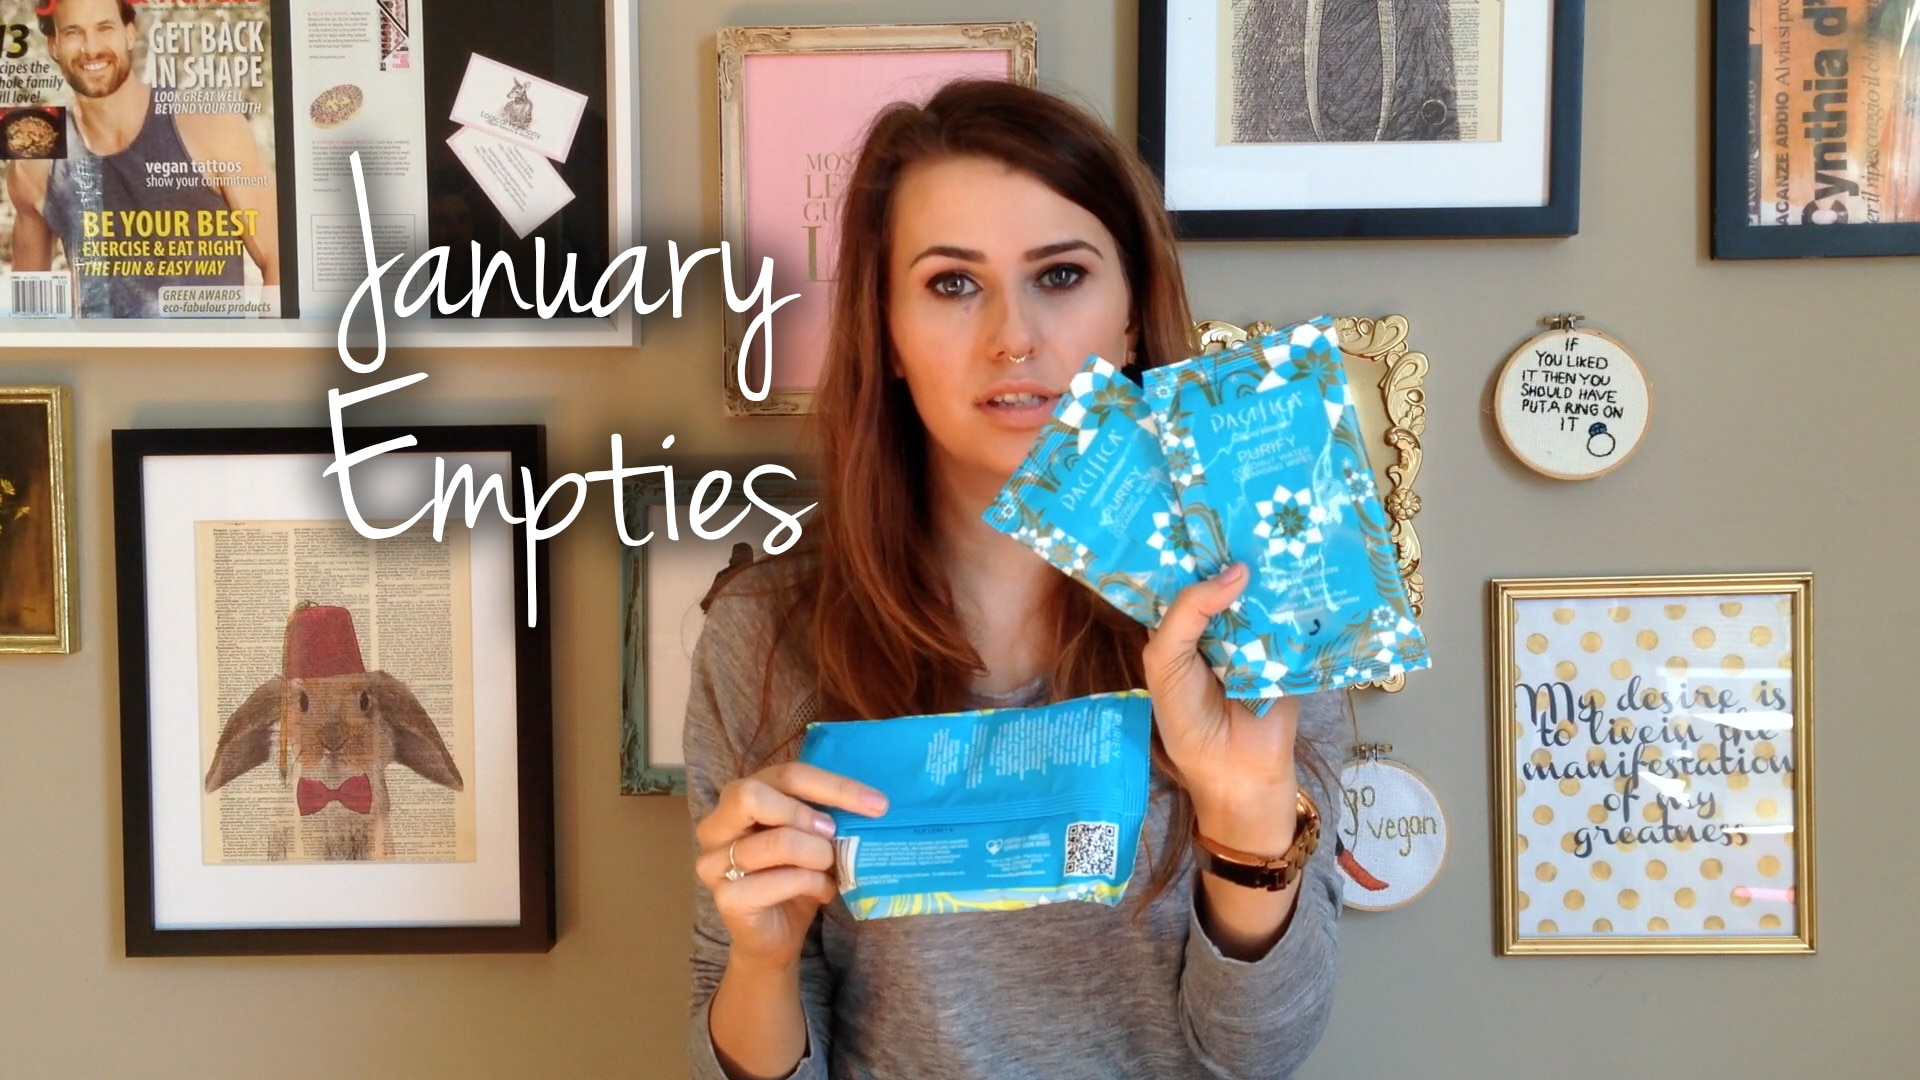 January Empties Video